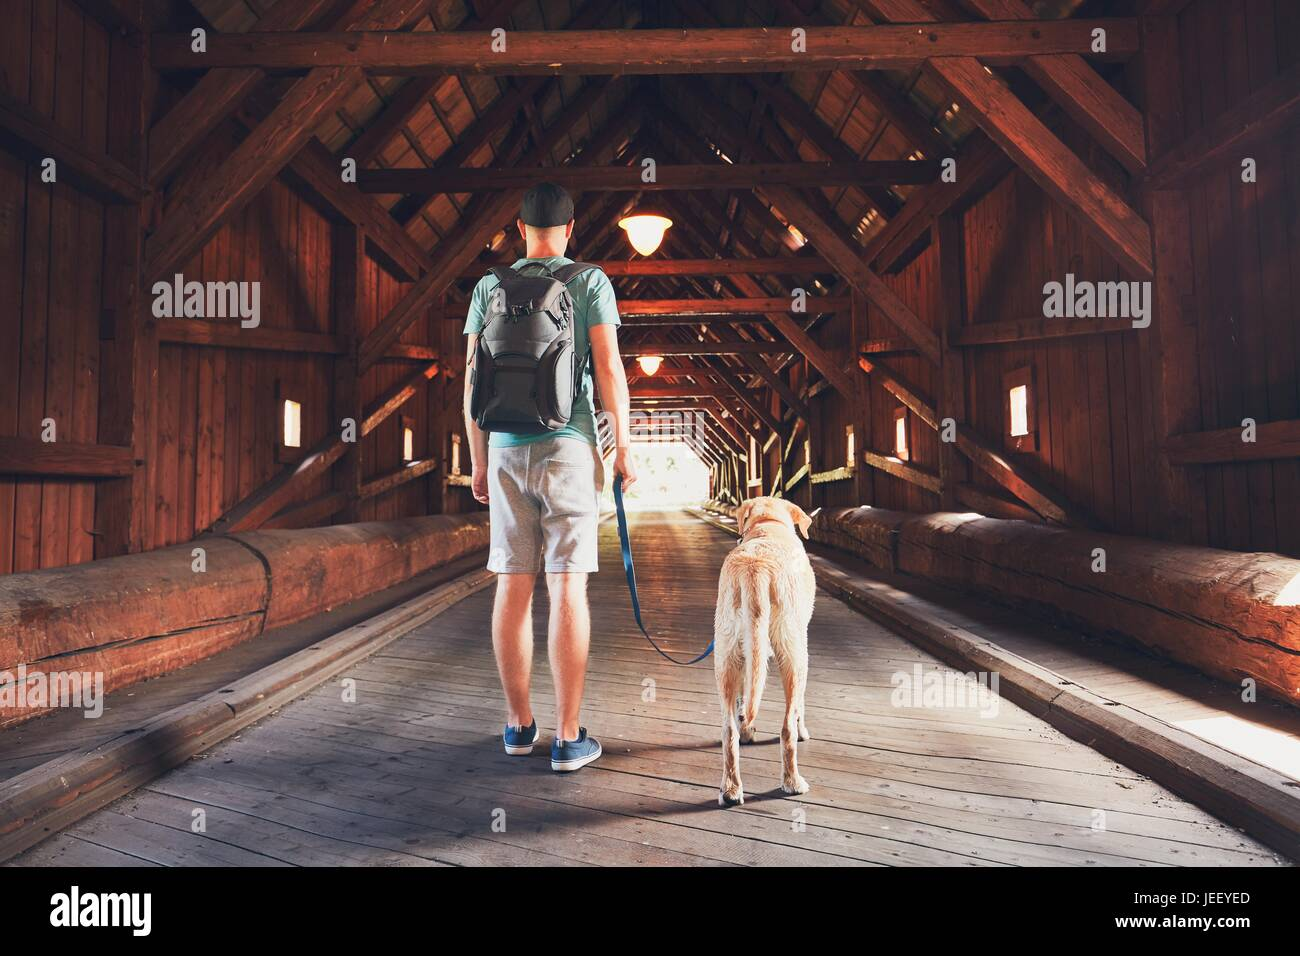 Young tourist with his dog inside of the covered bridge over the river in Radosov, Czech Republic - Stock Image